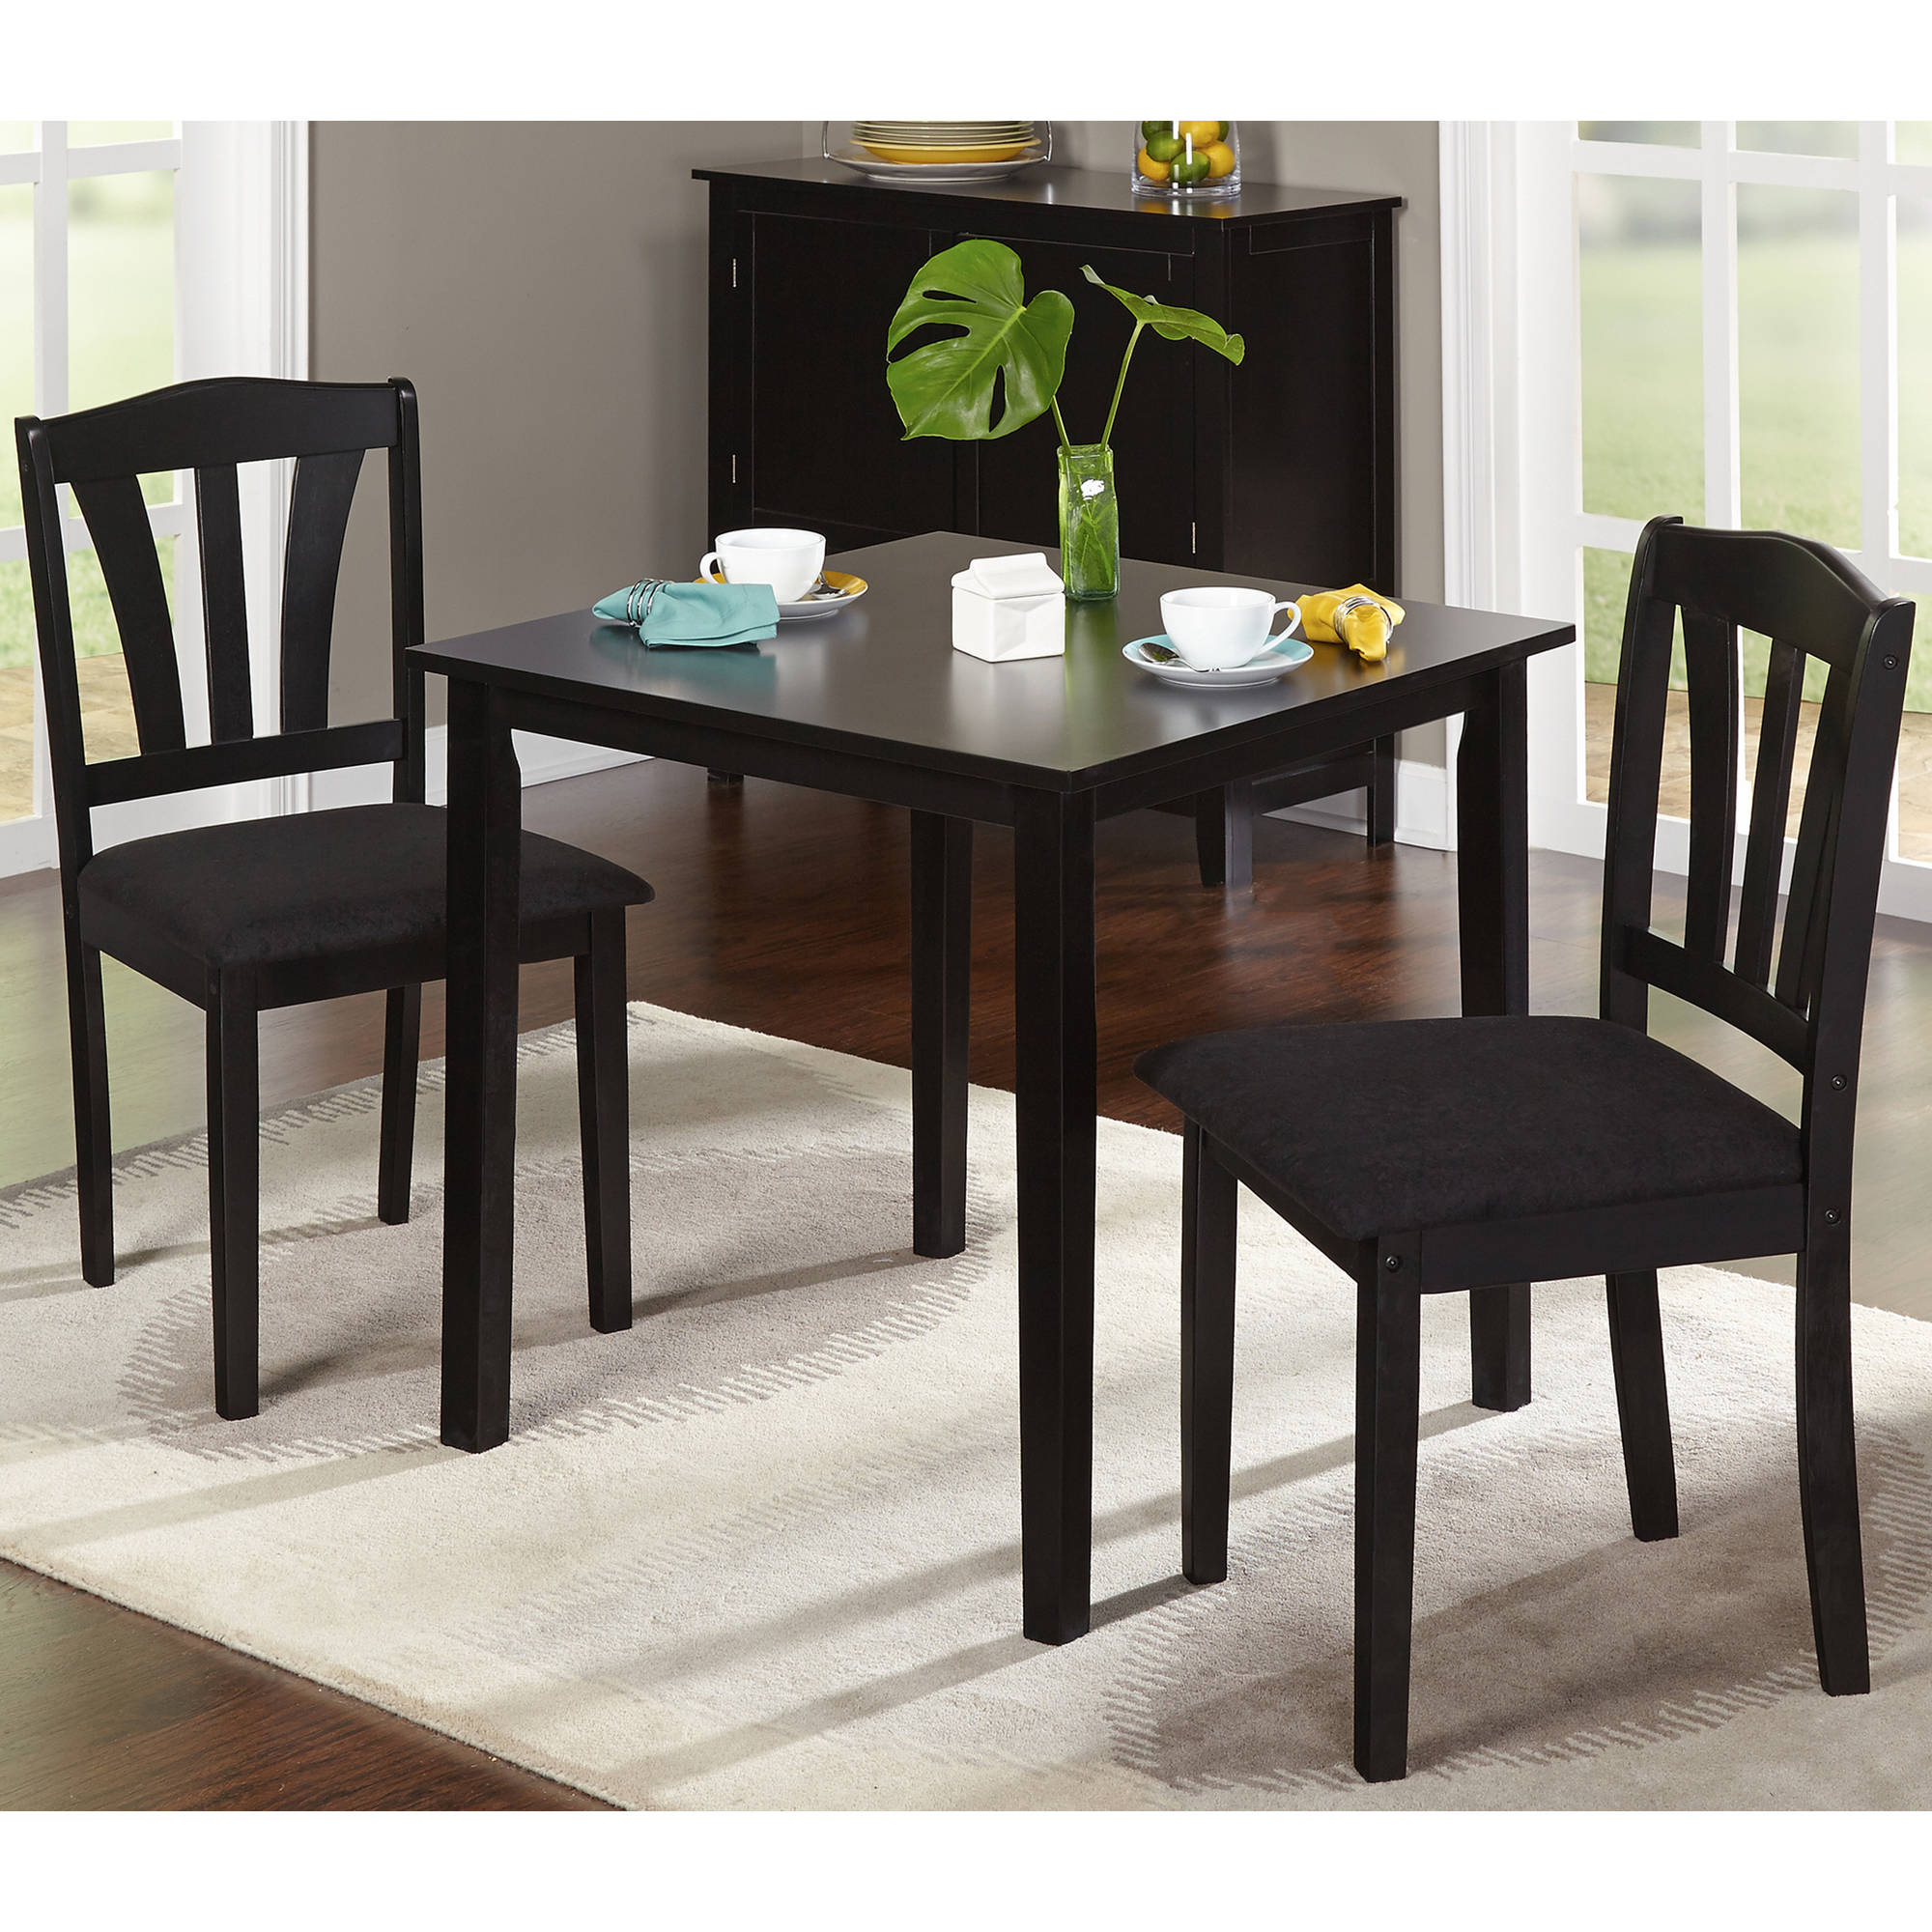 Metropolitan 3 Piece Dining Set, Multiple Finishes Within Current 3 Piece Breakfast Dining Sets (View 13 of 20)